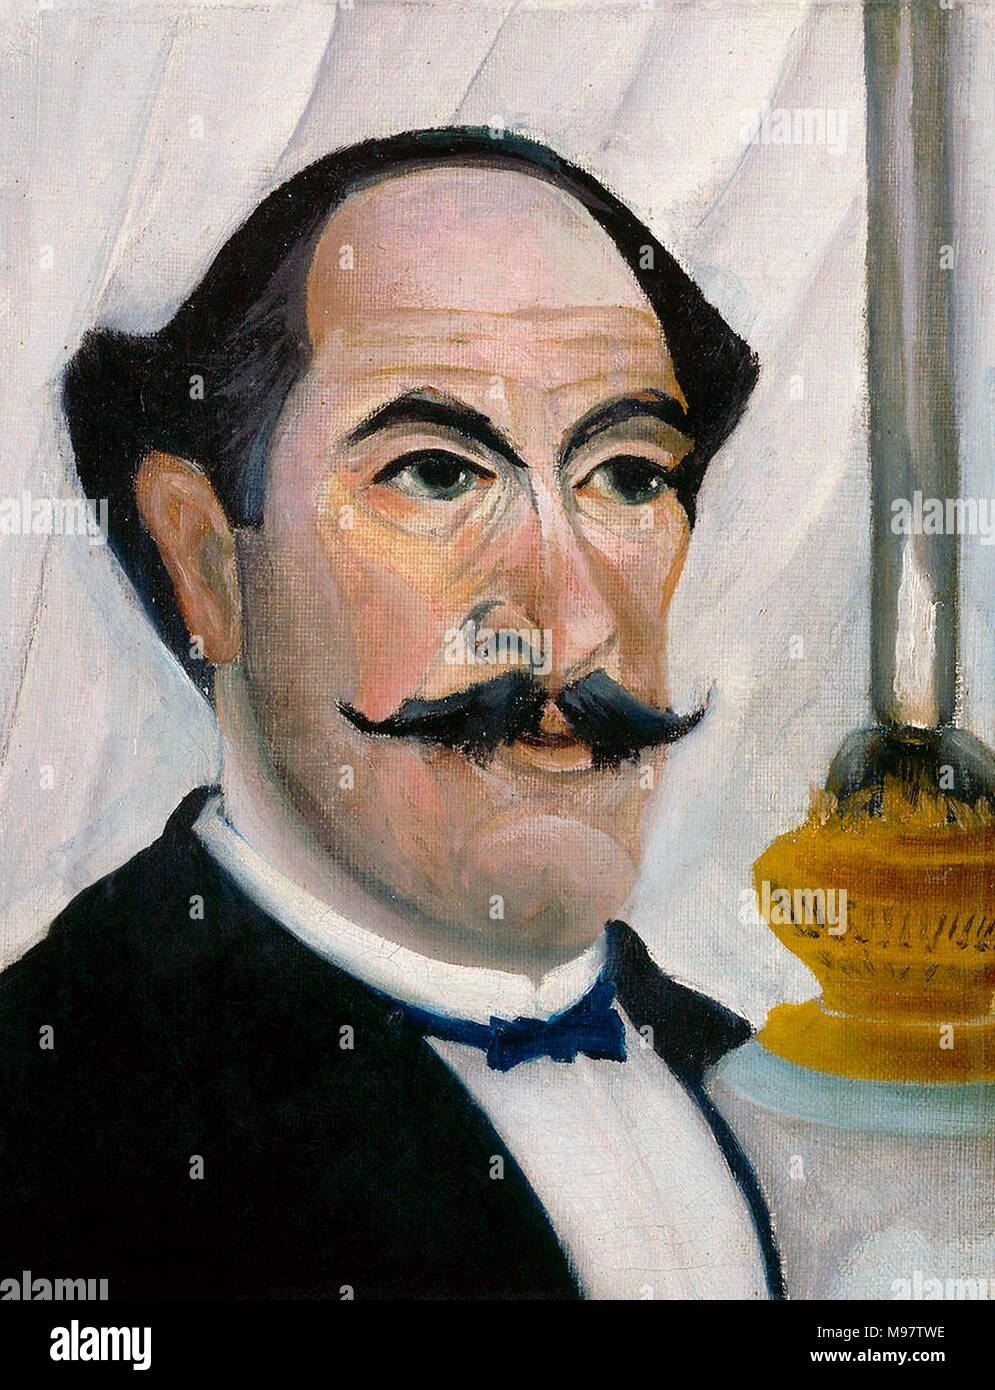 Henri Rousseau (1844-1910), self-portrait, oil on canvas, c.1902/3 - Stock Image